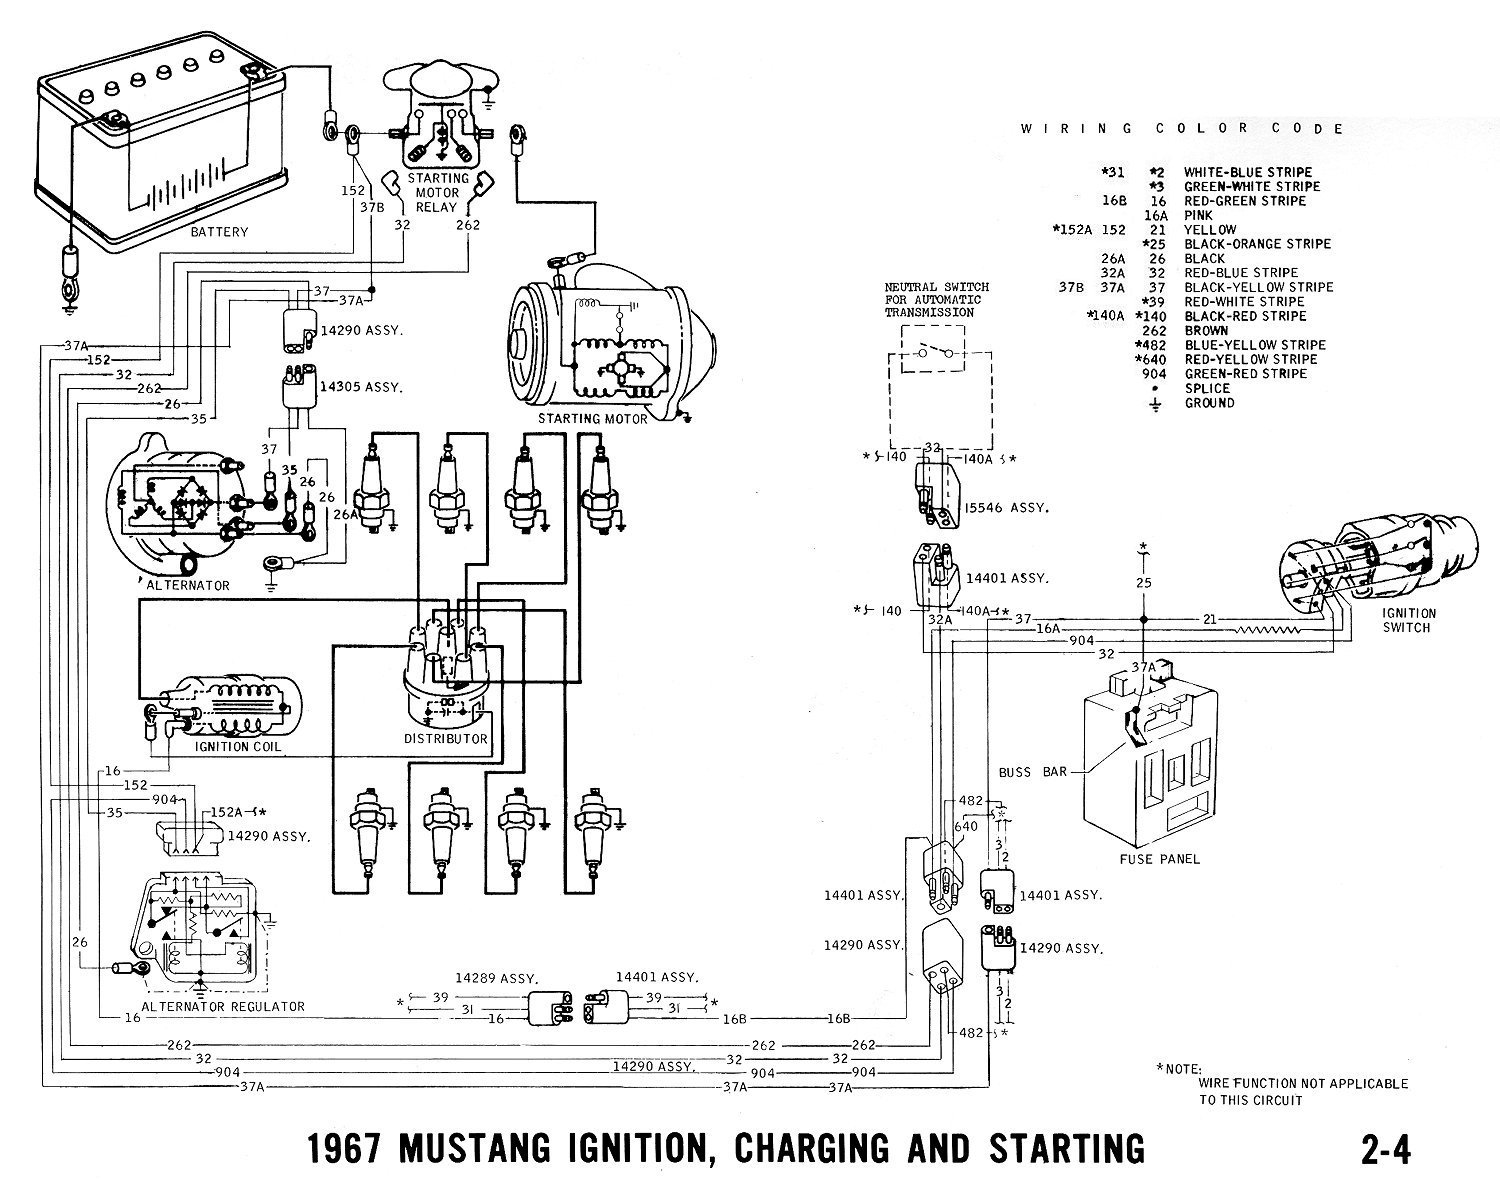 1981 camaro ignition schema cablage